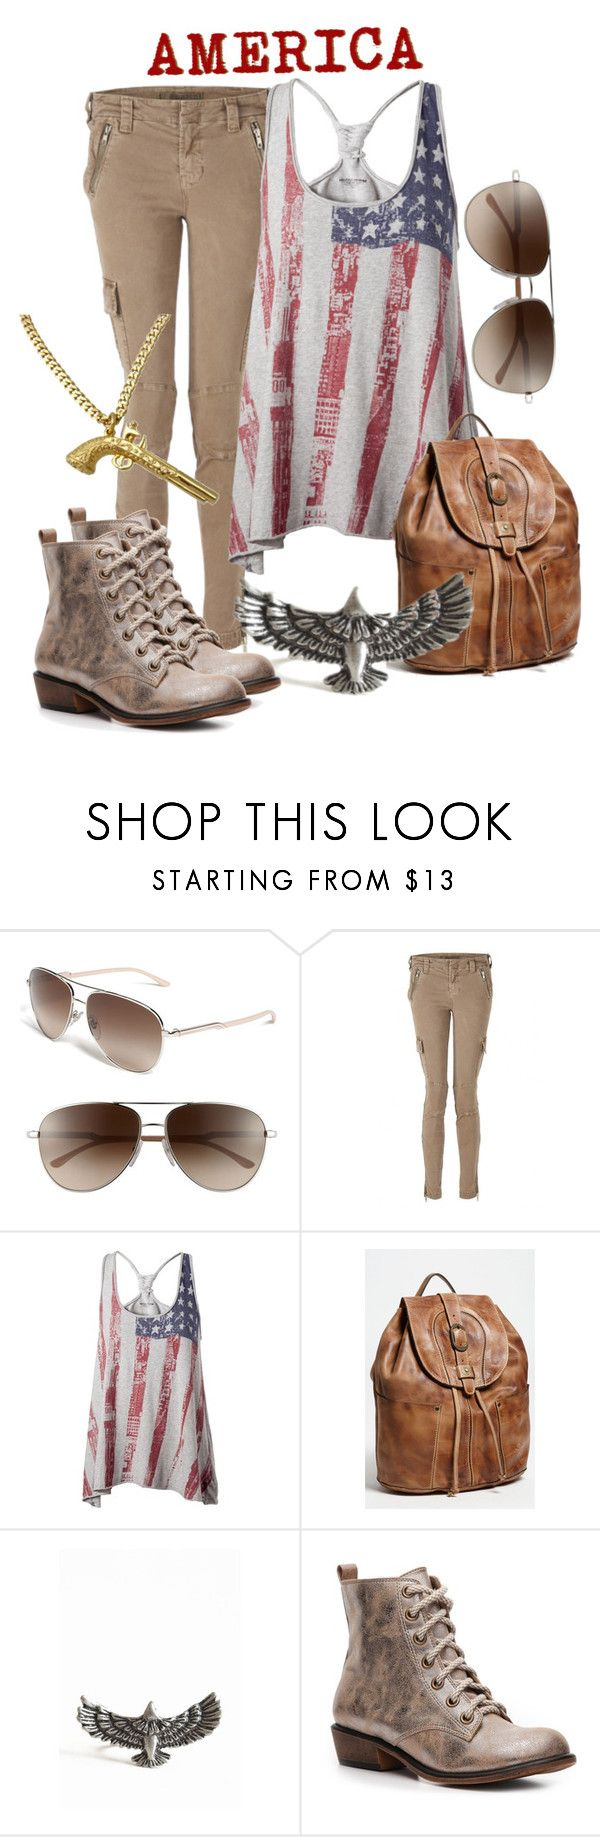 """The Experiment"" by princesschandler ❤ liked on Polyvore featuring STELLA McCARTNEY, J Brand, Tommy Hilfiger, Patricia Nash, Dirty Laundry, Wildfox, america, eagle, democracy in america and american"